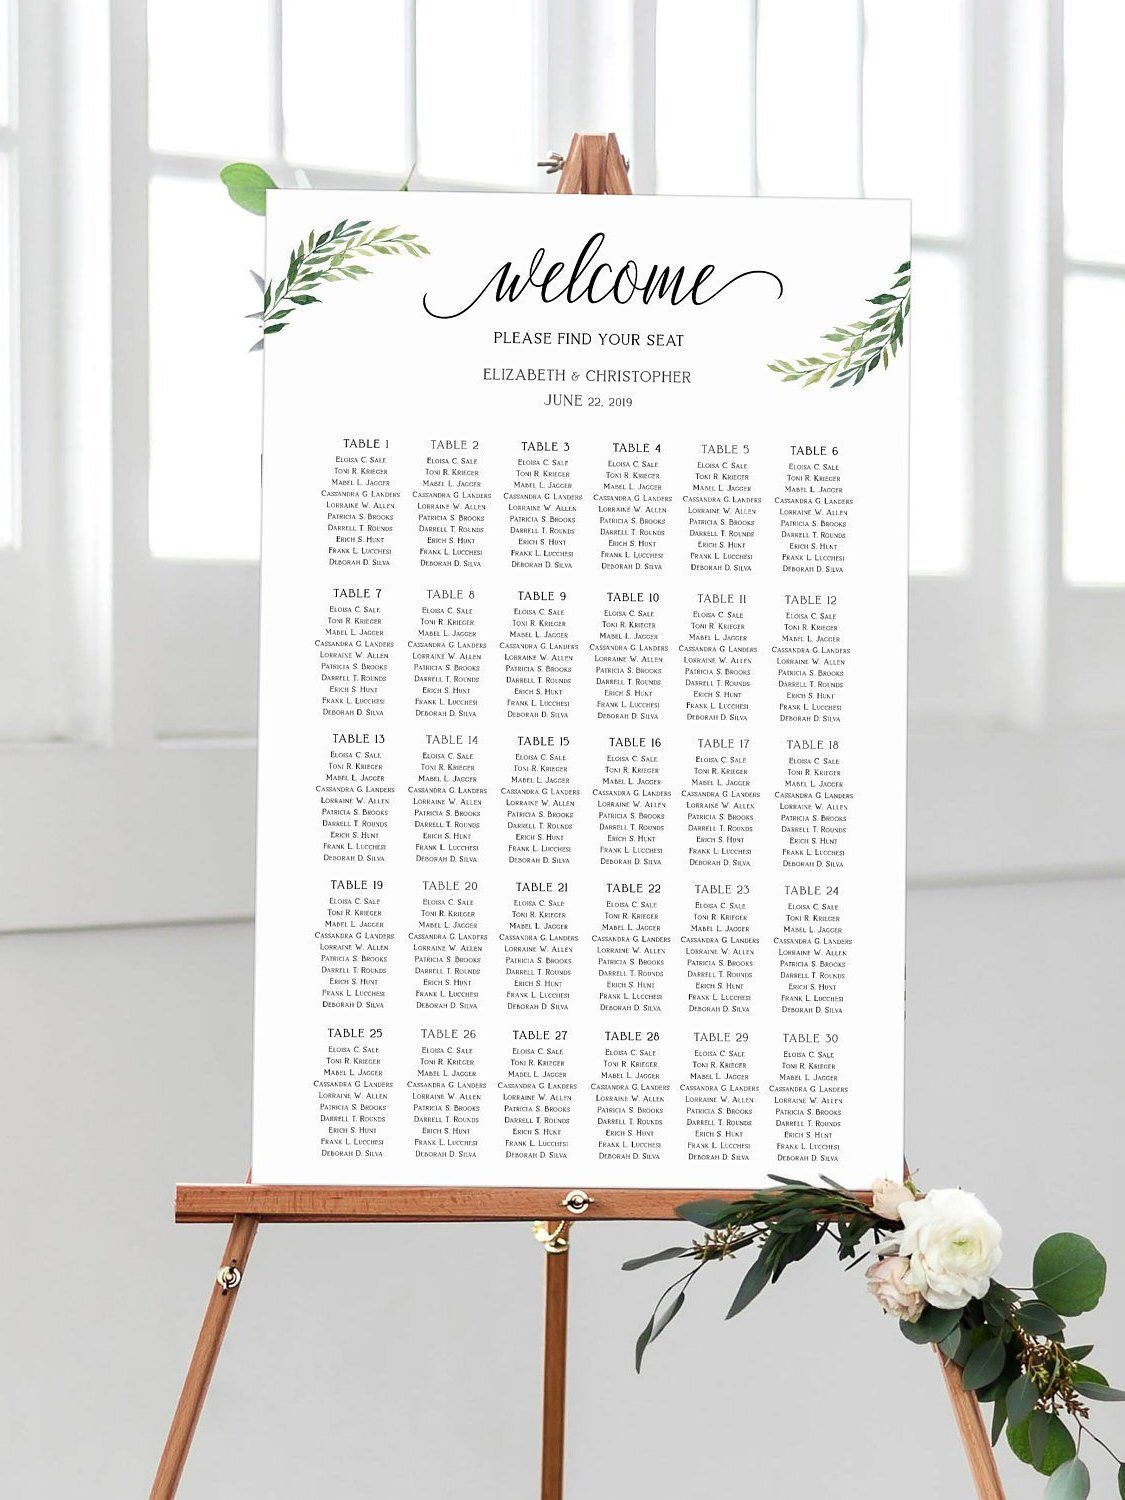 Wedding Seating Chart For 30 Tables Editable Rustic Seating Guest List Board Printa Seating Chart Wedding Reception Seating Chart Wedding Guest List Template Wedding reception seating chart template